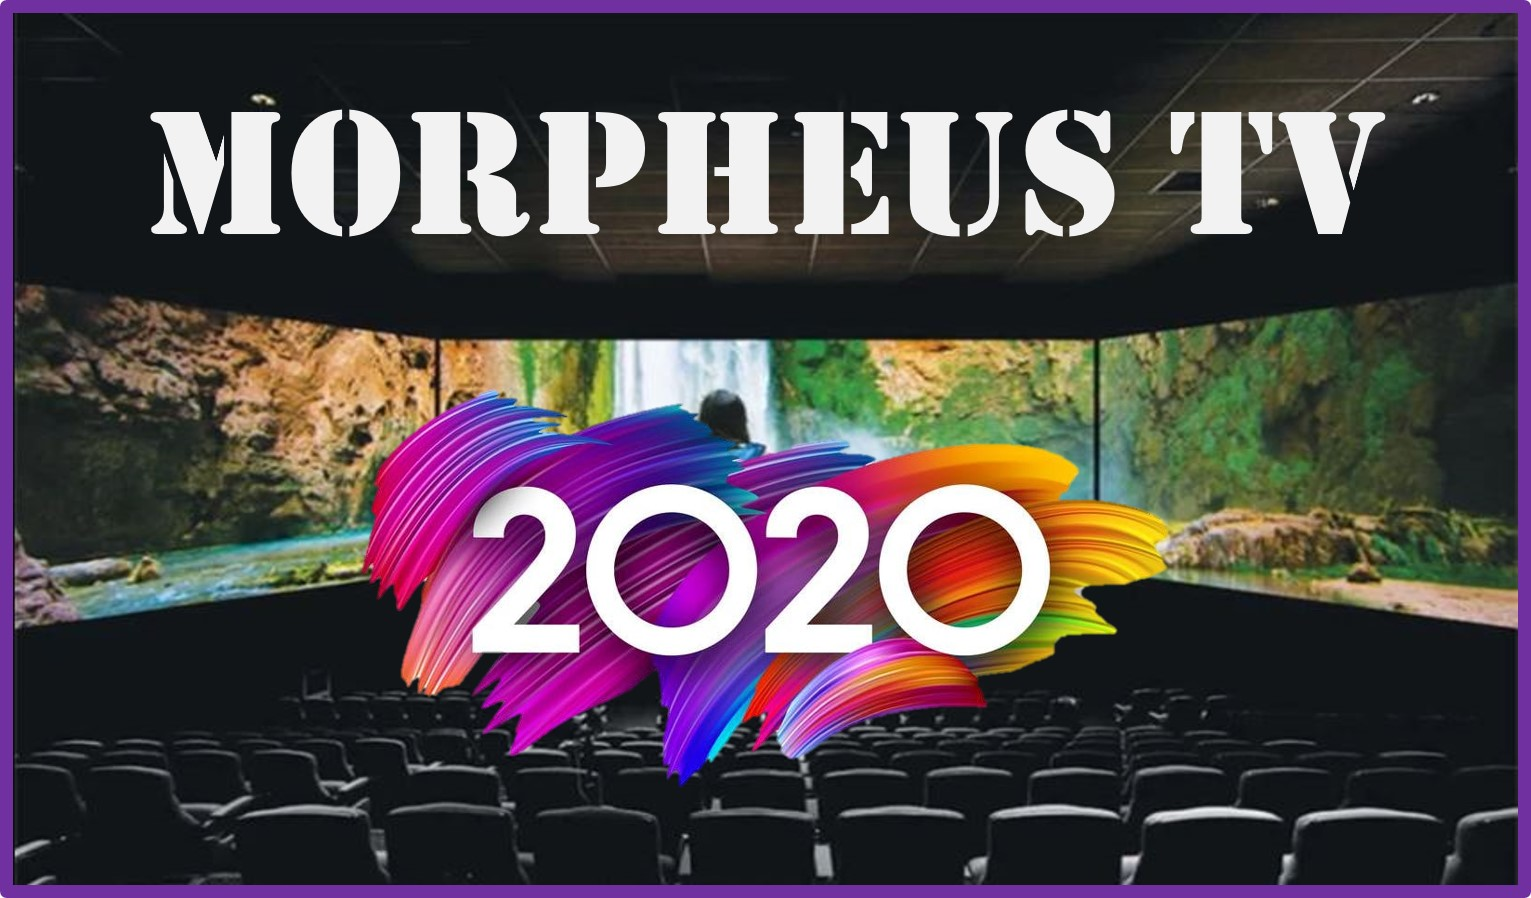 Best Apk For Firestick 2020.Morpheus Tv Apk 2020 Free Download For Android Ios Fire Stick